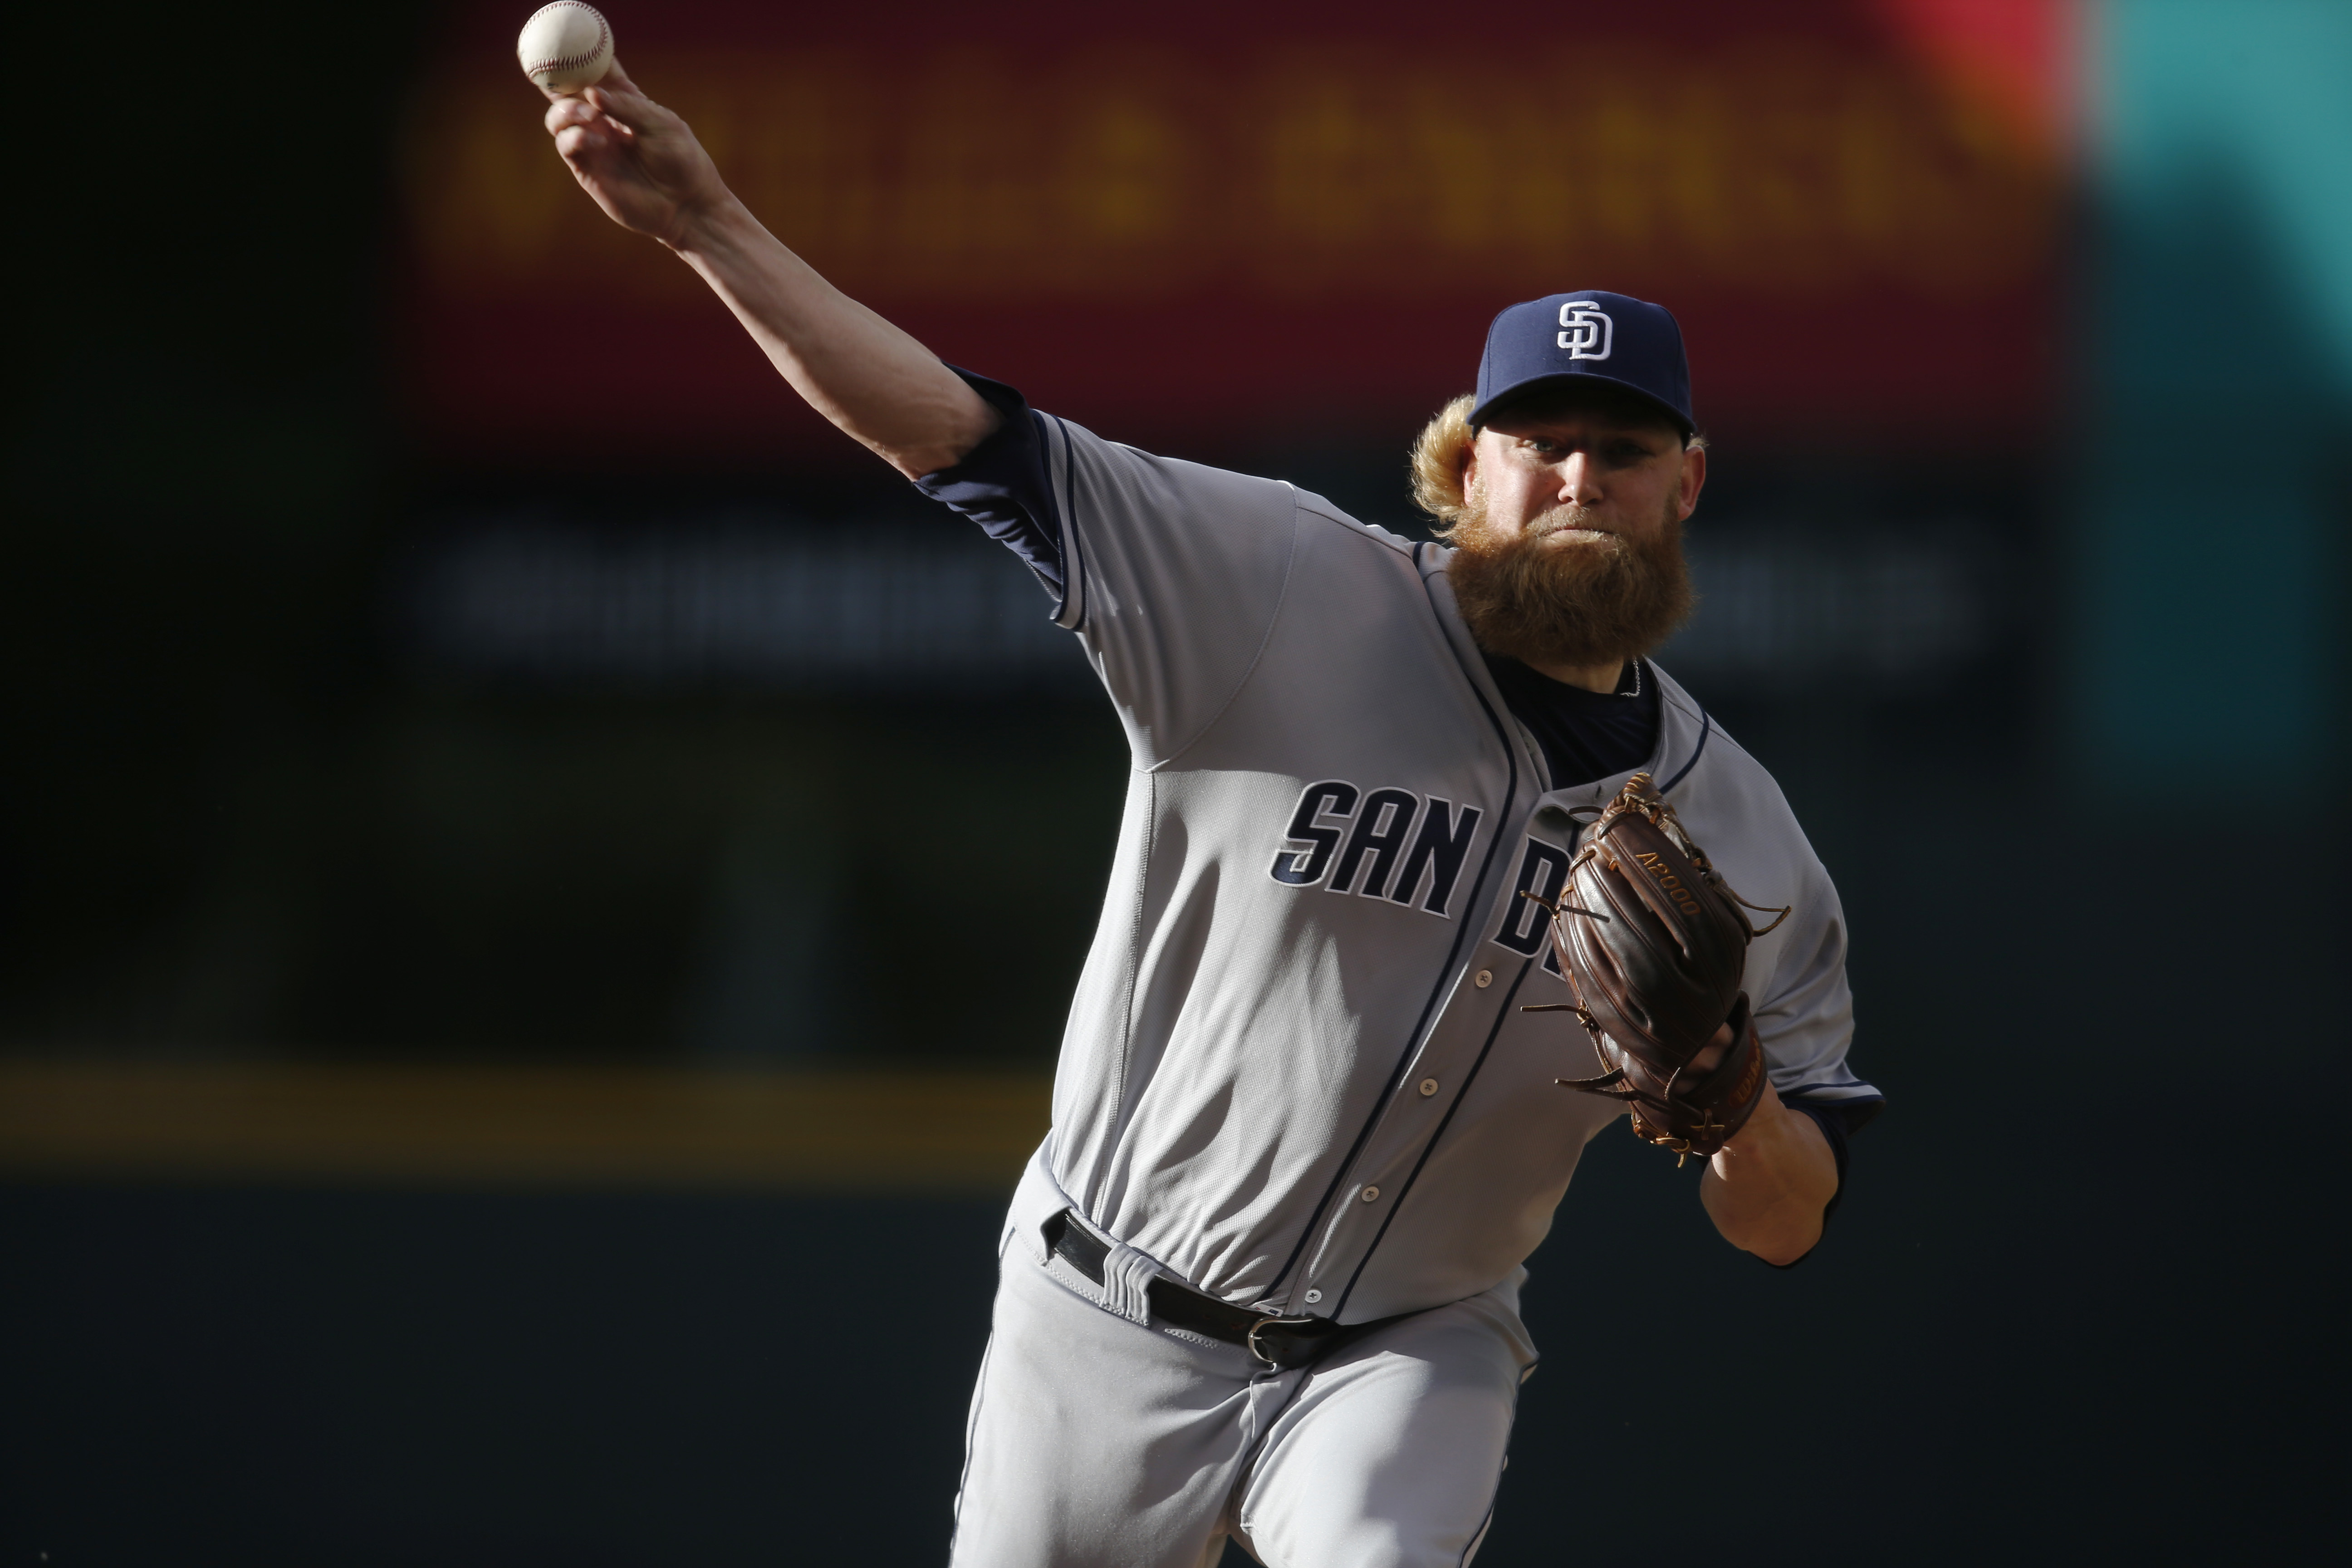 San Diego Padres starting pitcher Andrew Cashner delivers a pitch to Colorado Rockies' Charlie Blackmon in the first inning of a baseball game Friday, June 10, 2016, in Denver. (AP Photo/David Zalubowski)